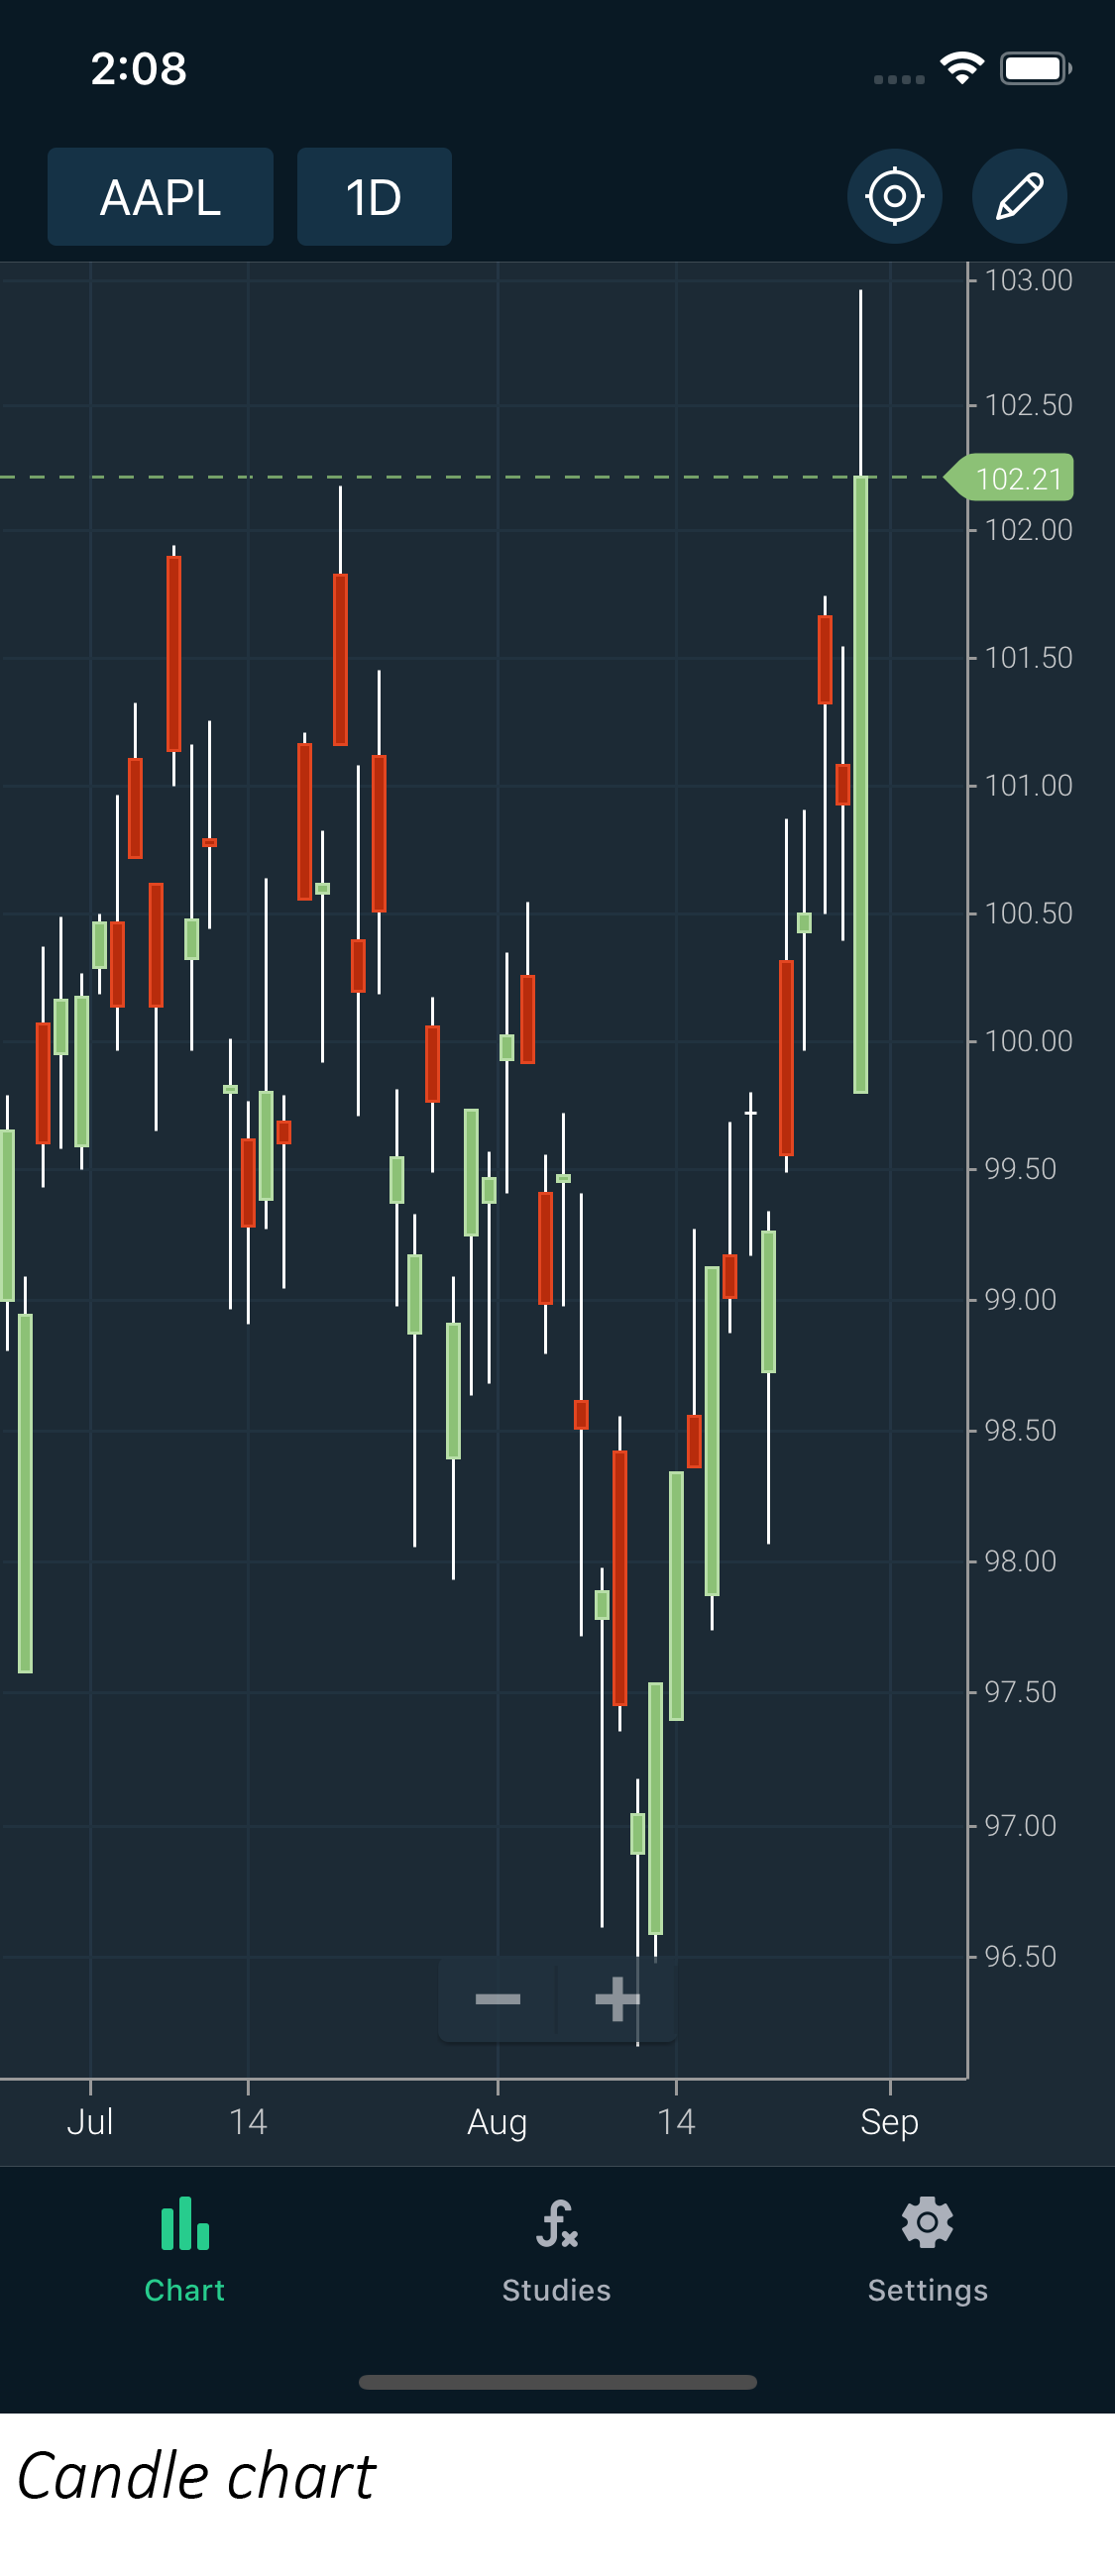 Candle chart